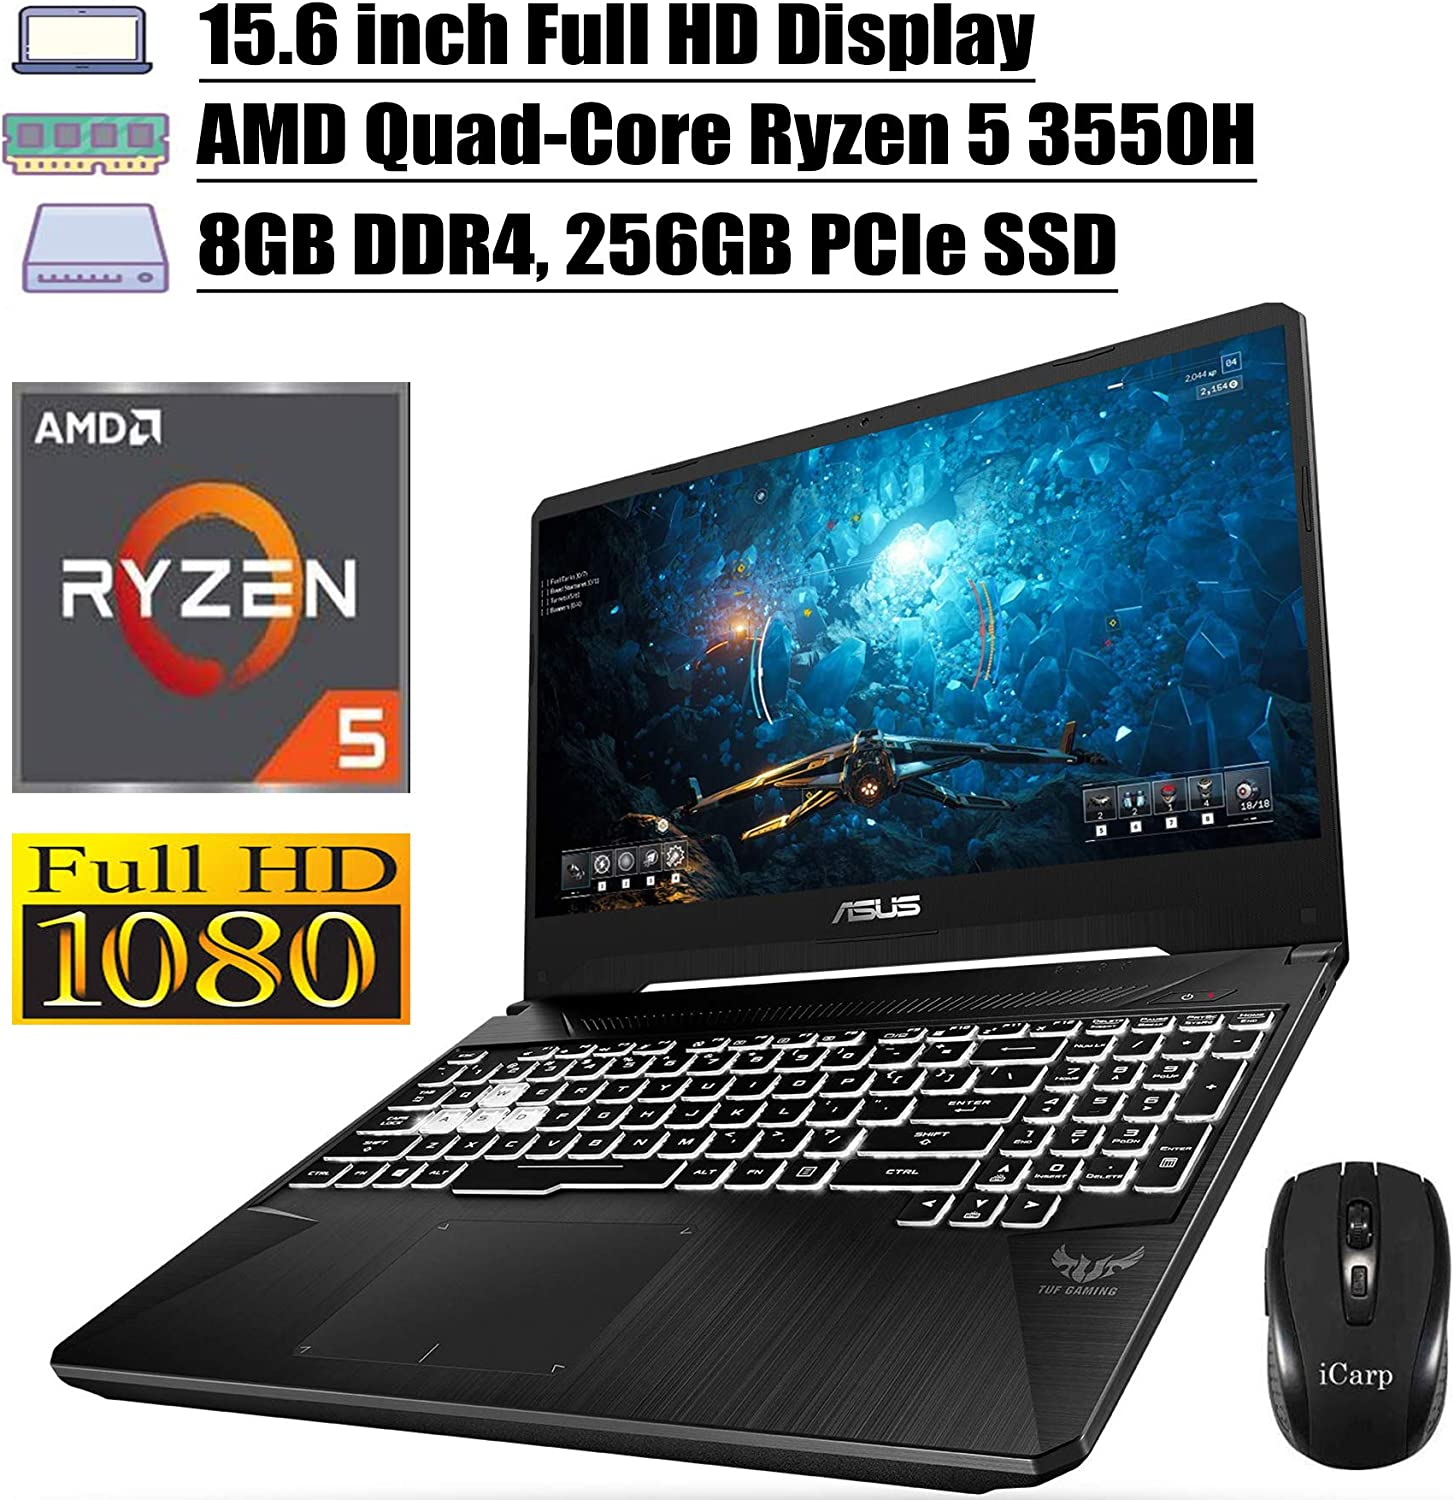 "2020 Newest ASUS TUF Gaming Laptop 15.6"" Full HD Display AMD Quad-Core Ryzen 5 3550H (Beats i7-7700HQ) 8GB DDR4 256GB PCIe SSD 4GB GTX 1650 RGB Backlit Webcam Win 10 + iCarp Wireless Mouse"